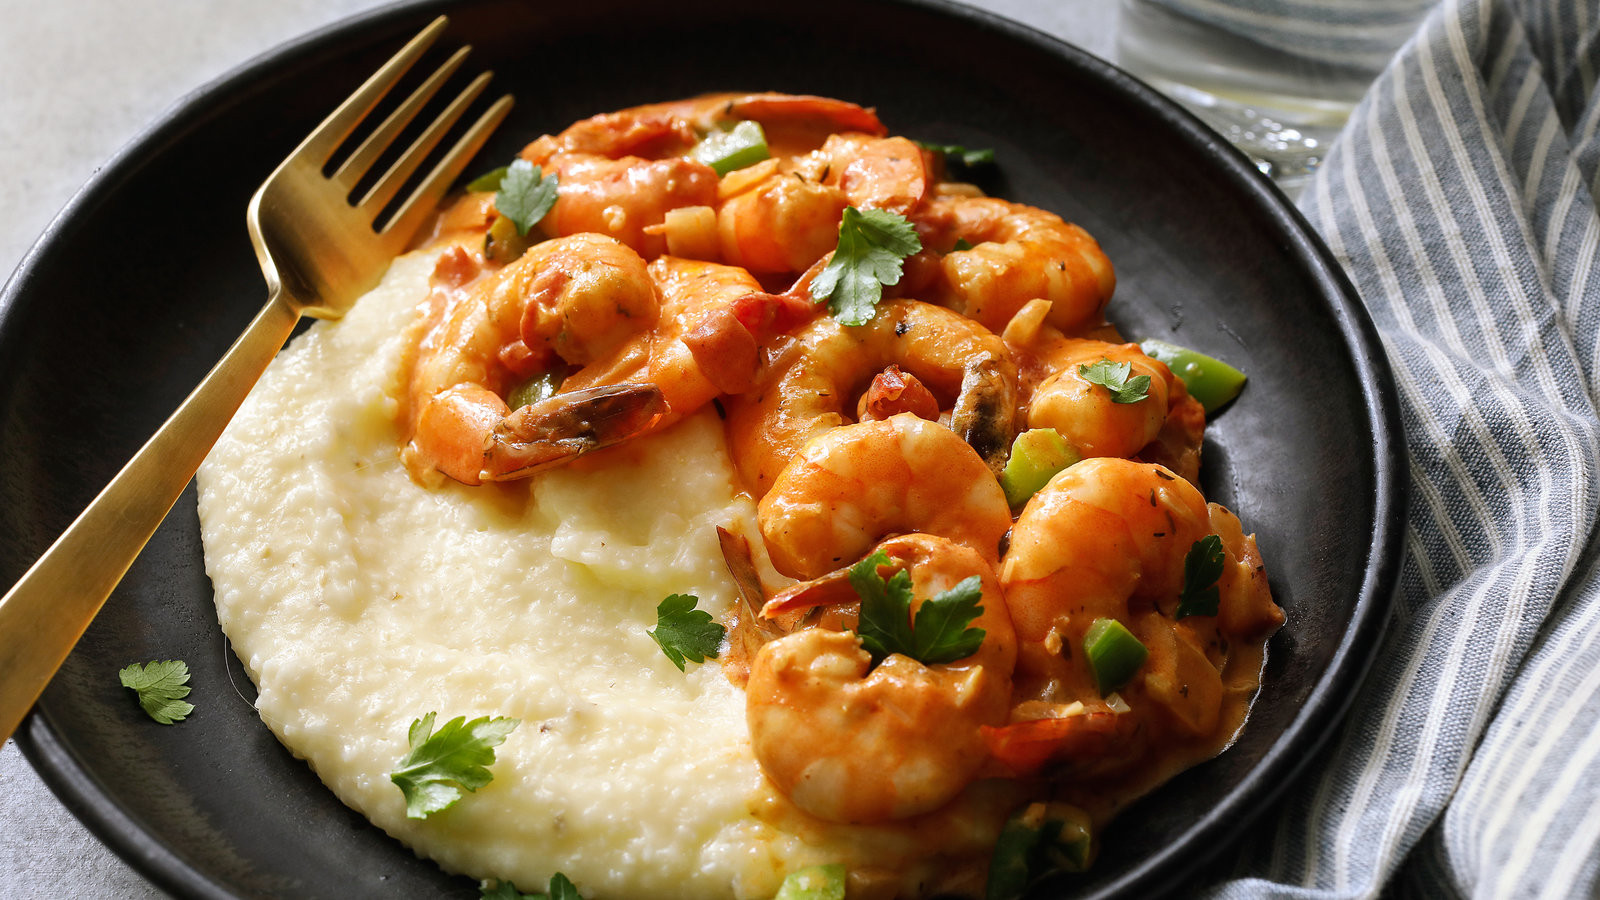 Sauce For Shrimp And Grits  Shrimp and Grits Recipe NYT Cooking